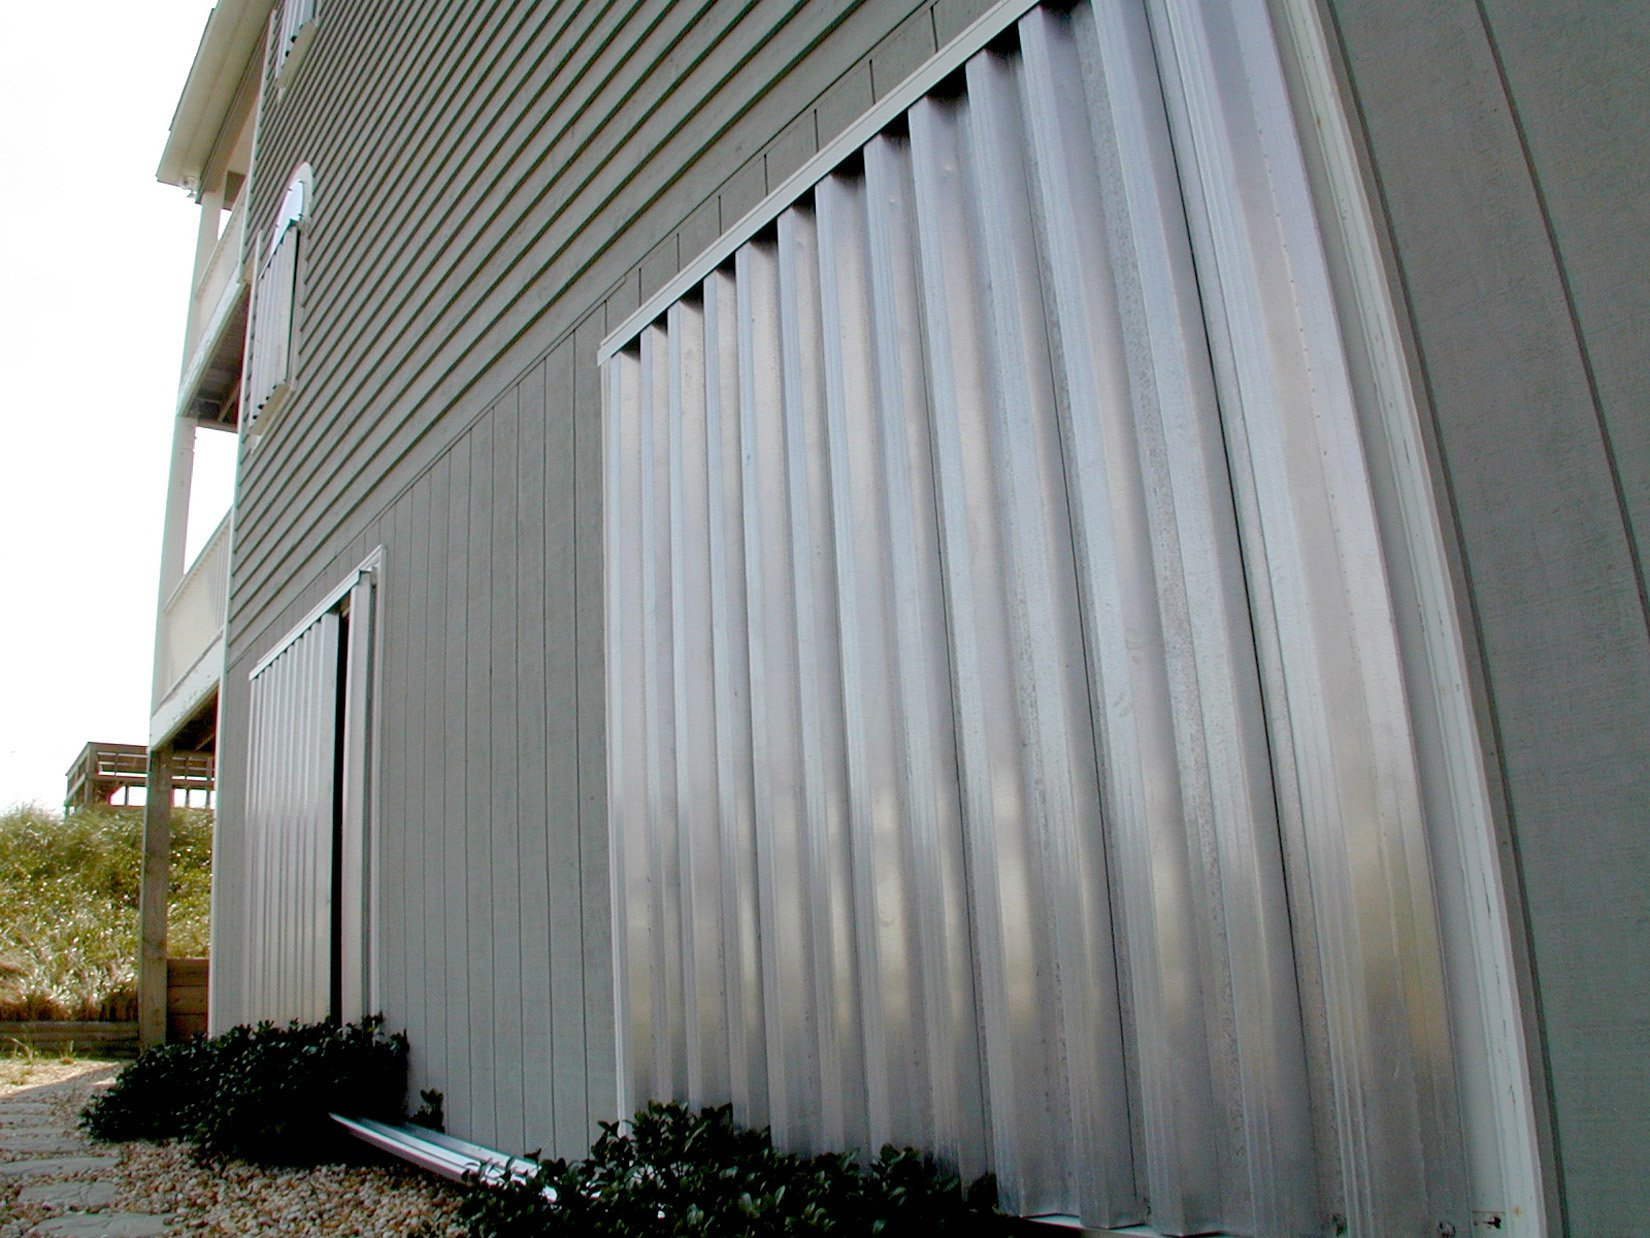 Storm Protection For Exterior Windows And Doors